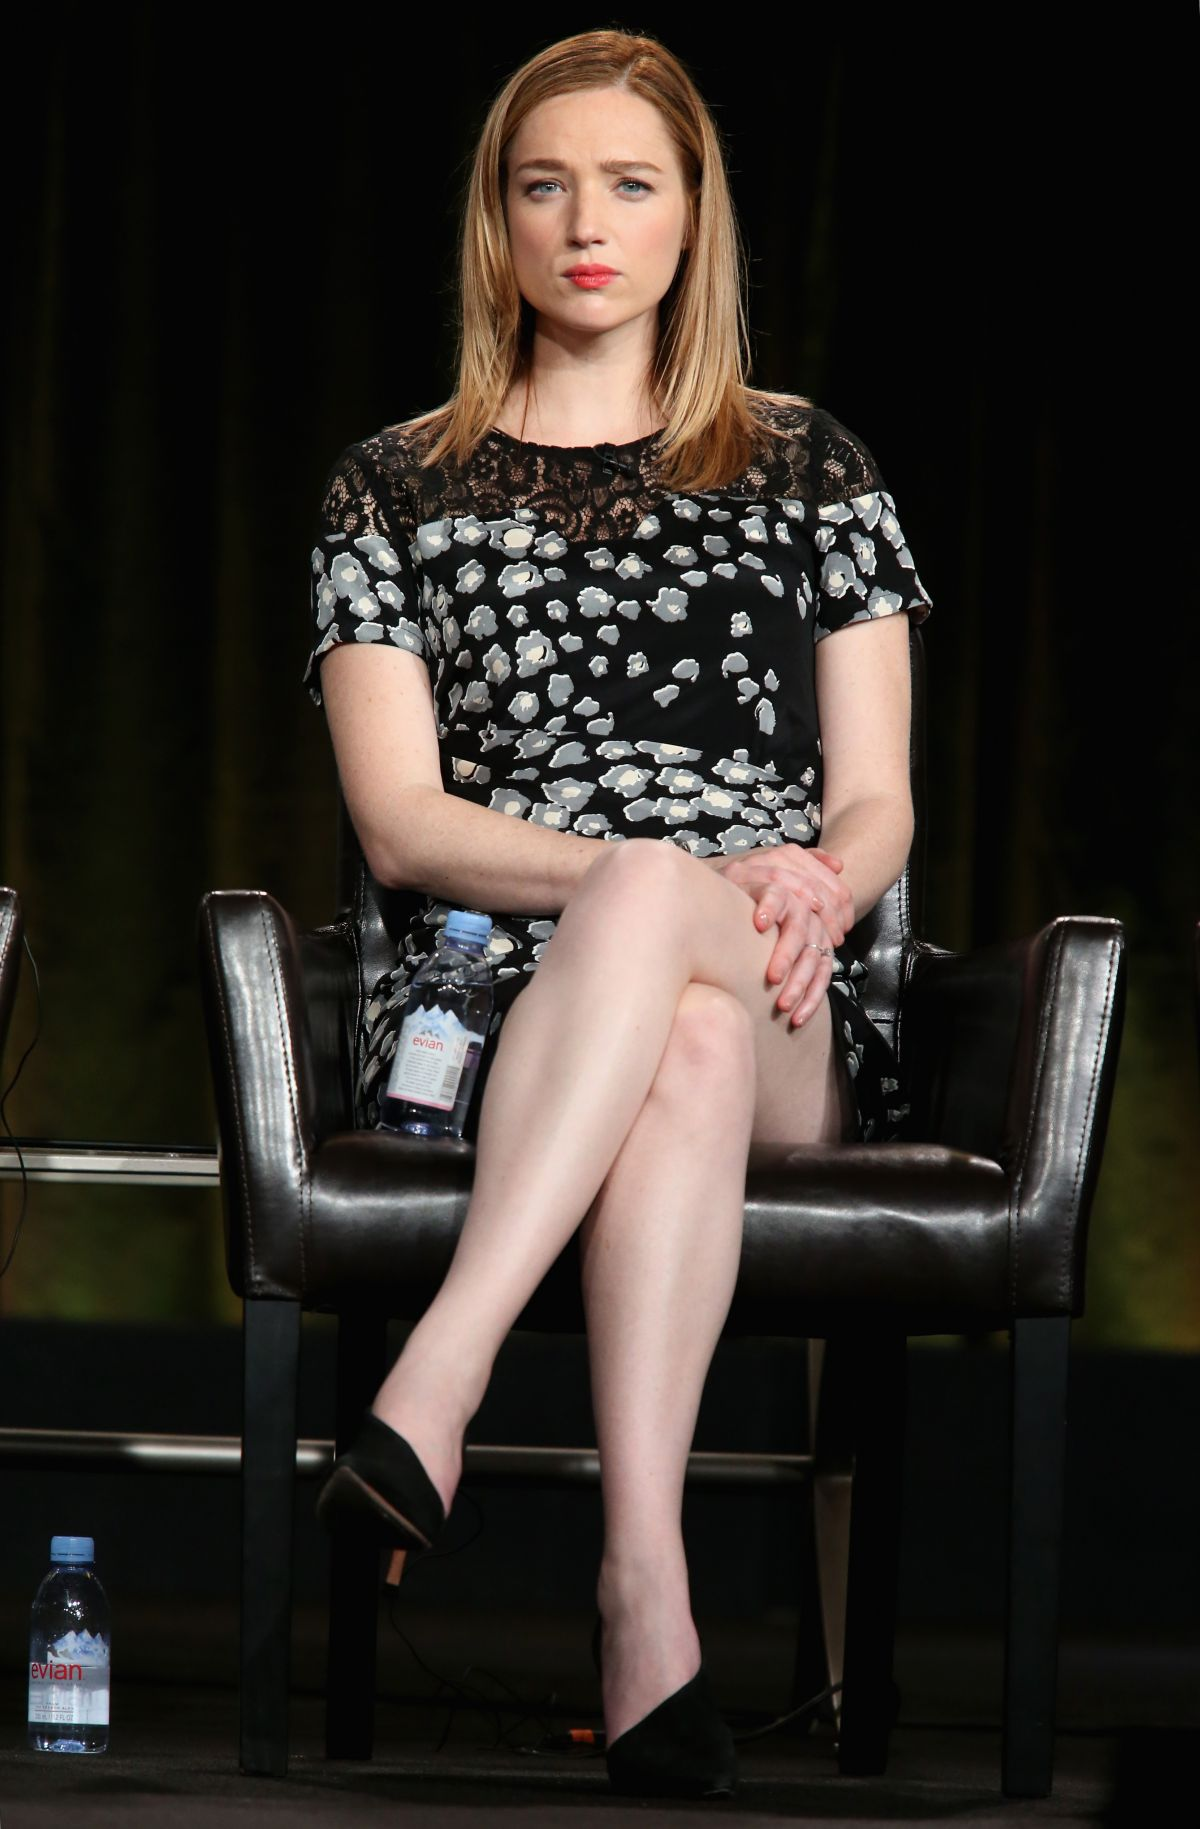 KRISTEN CONNOLLY at The Whispers Panel TCA Press Tour in Pasadena